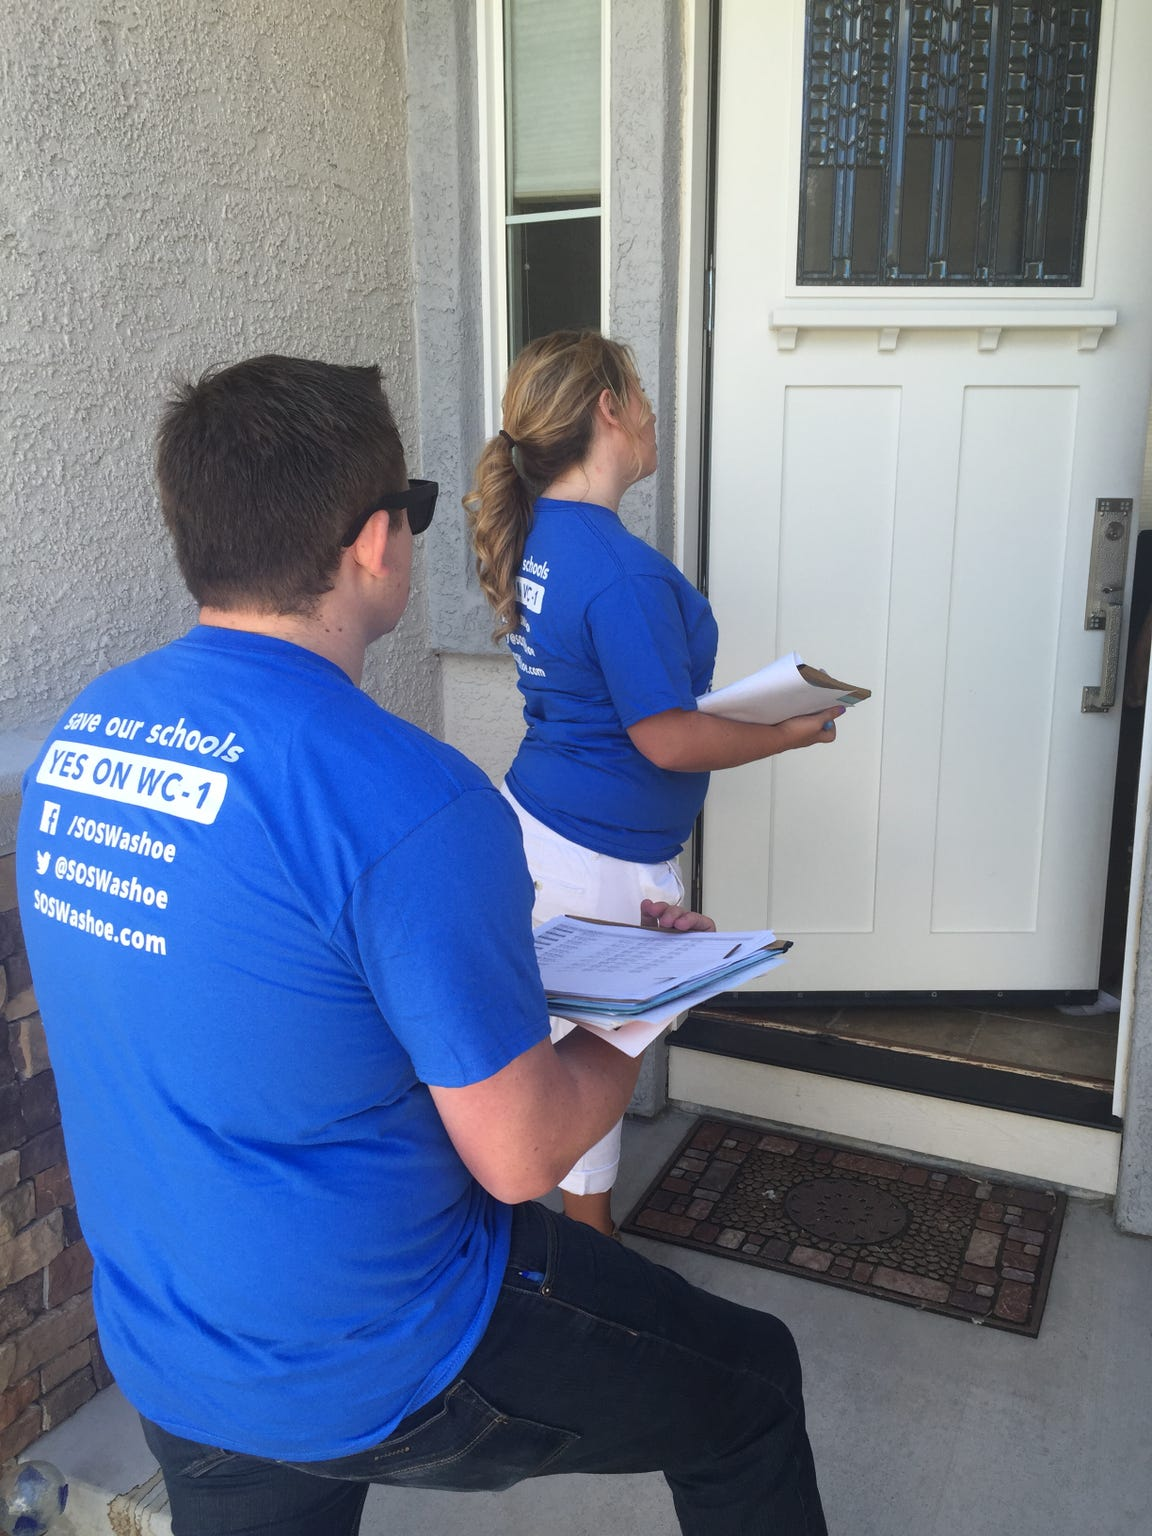 Two volunteers for the Save Our Schools campaign knock